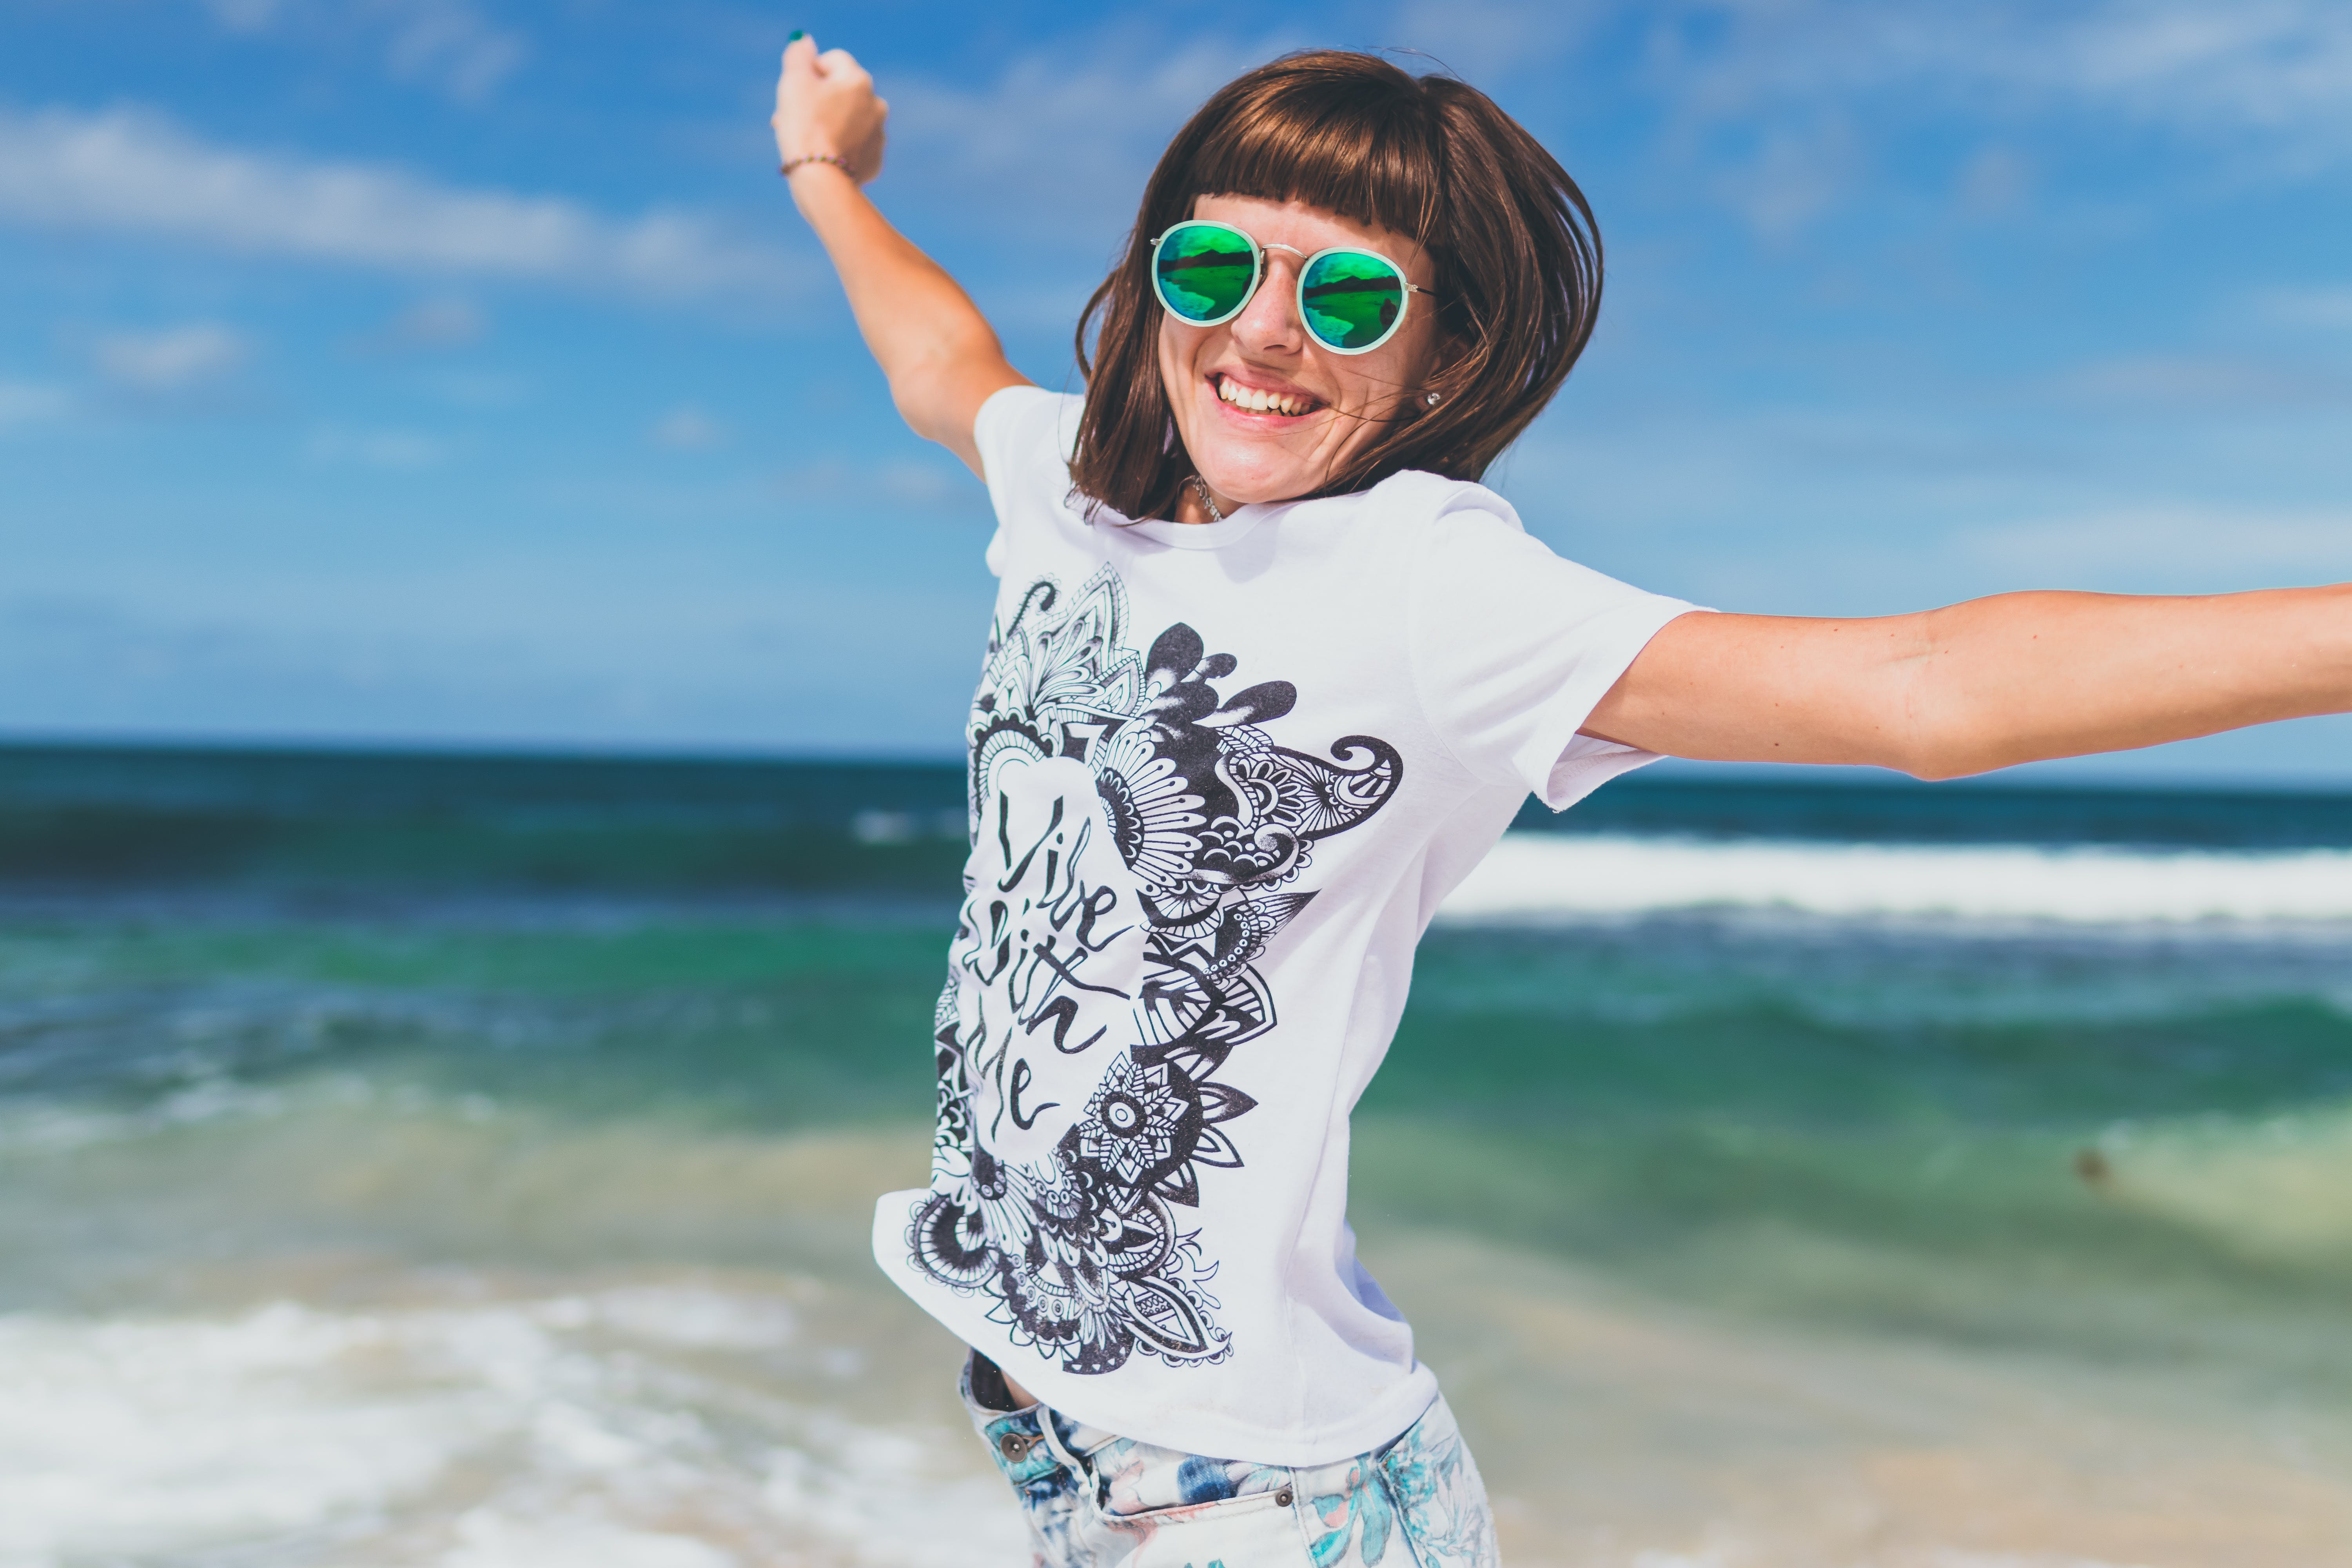 Woman in White and Black T-shirt Lifting Hands Smiling on Seashore